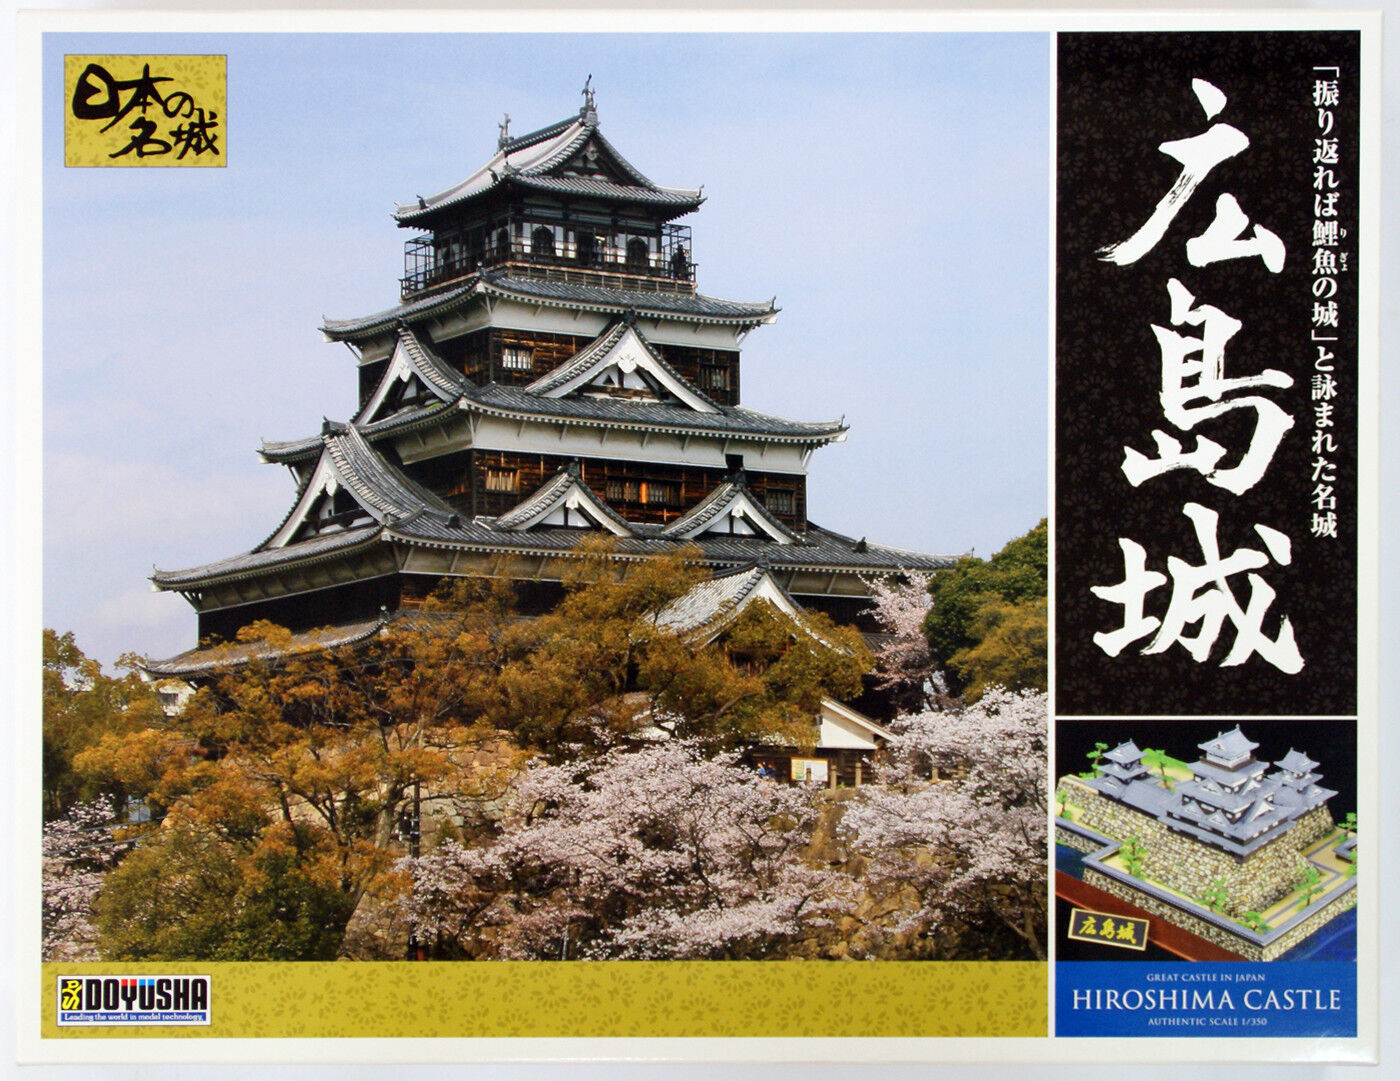 Doyusha DX8 102282 Japanese Hiroshima Castle DX 1 350 Scale Plastic Kit